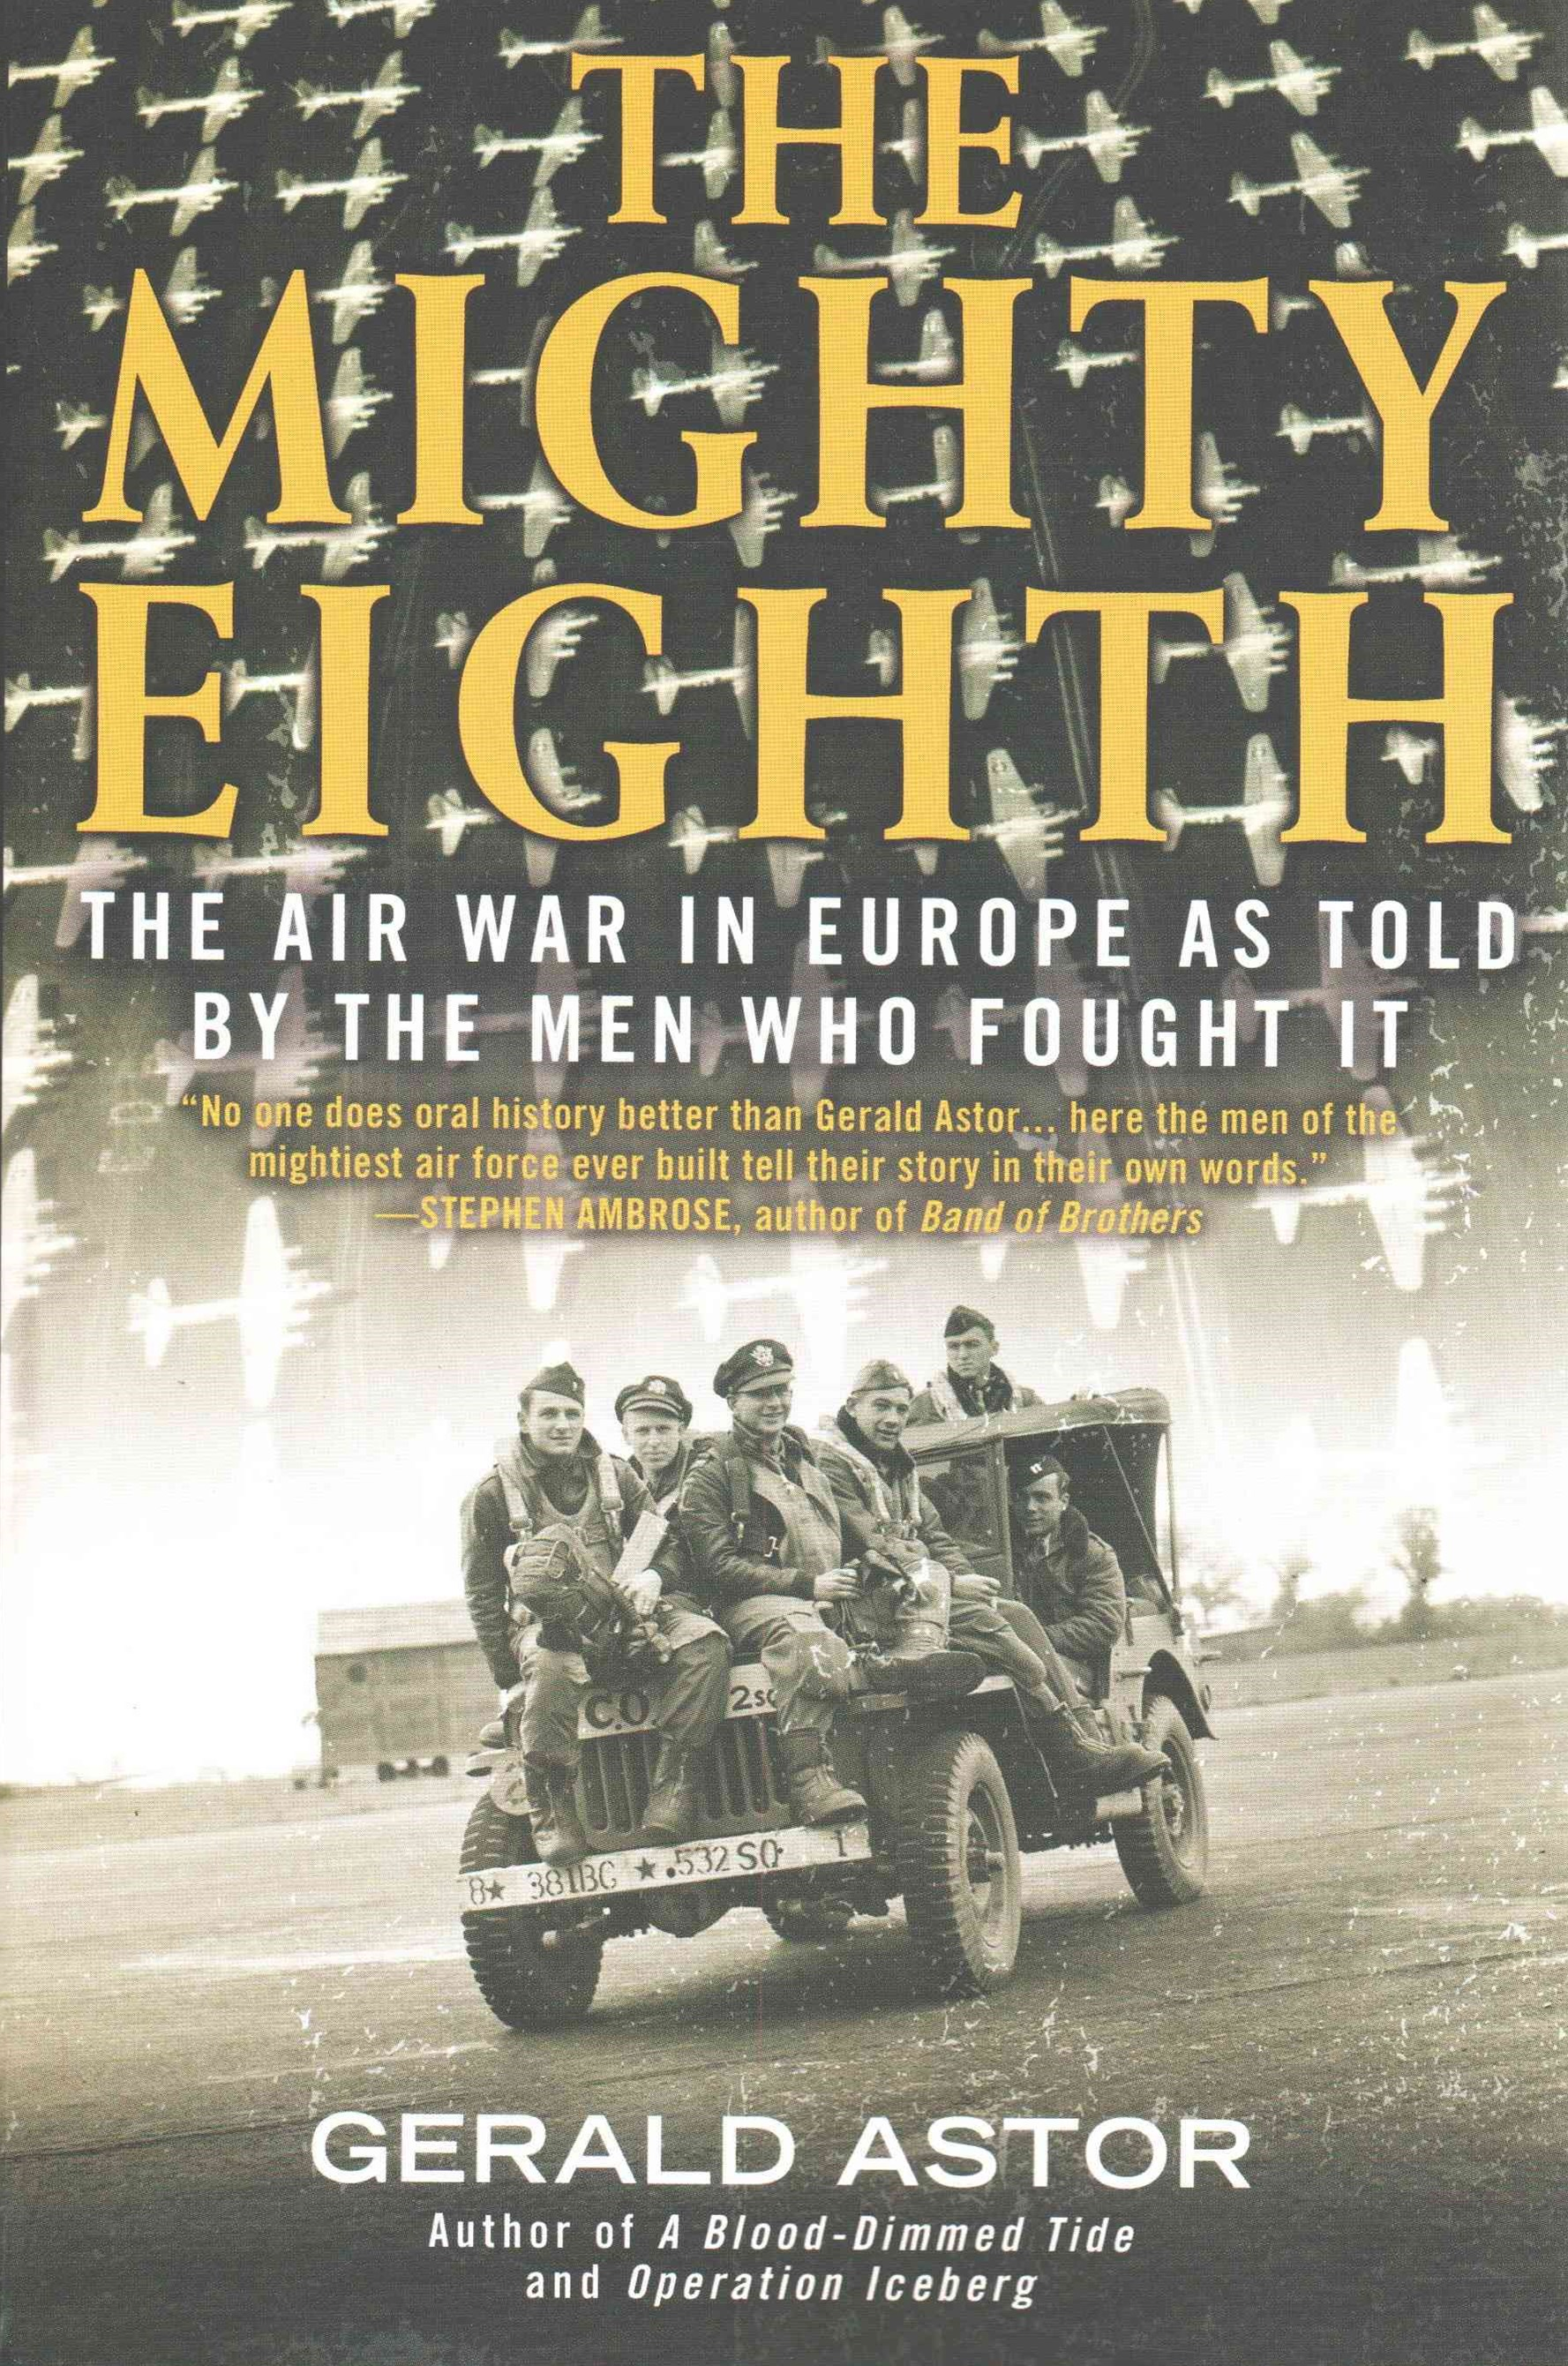 The Mighty Eighth: The Air War In Europe As Told By The Men WhoFought It